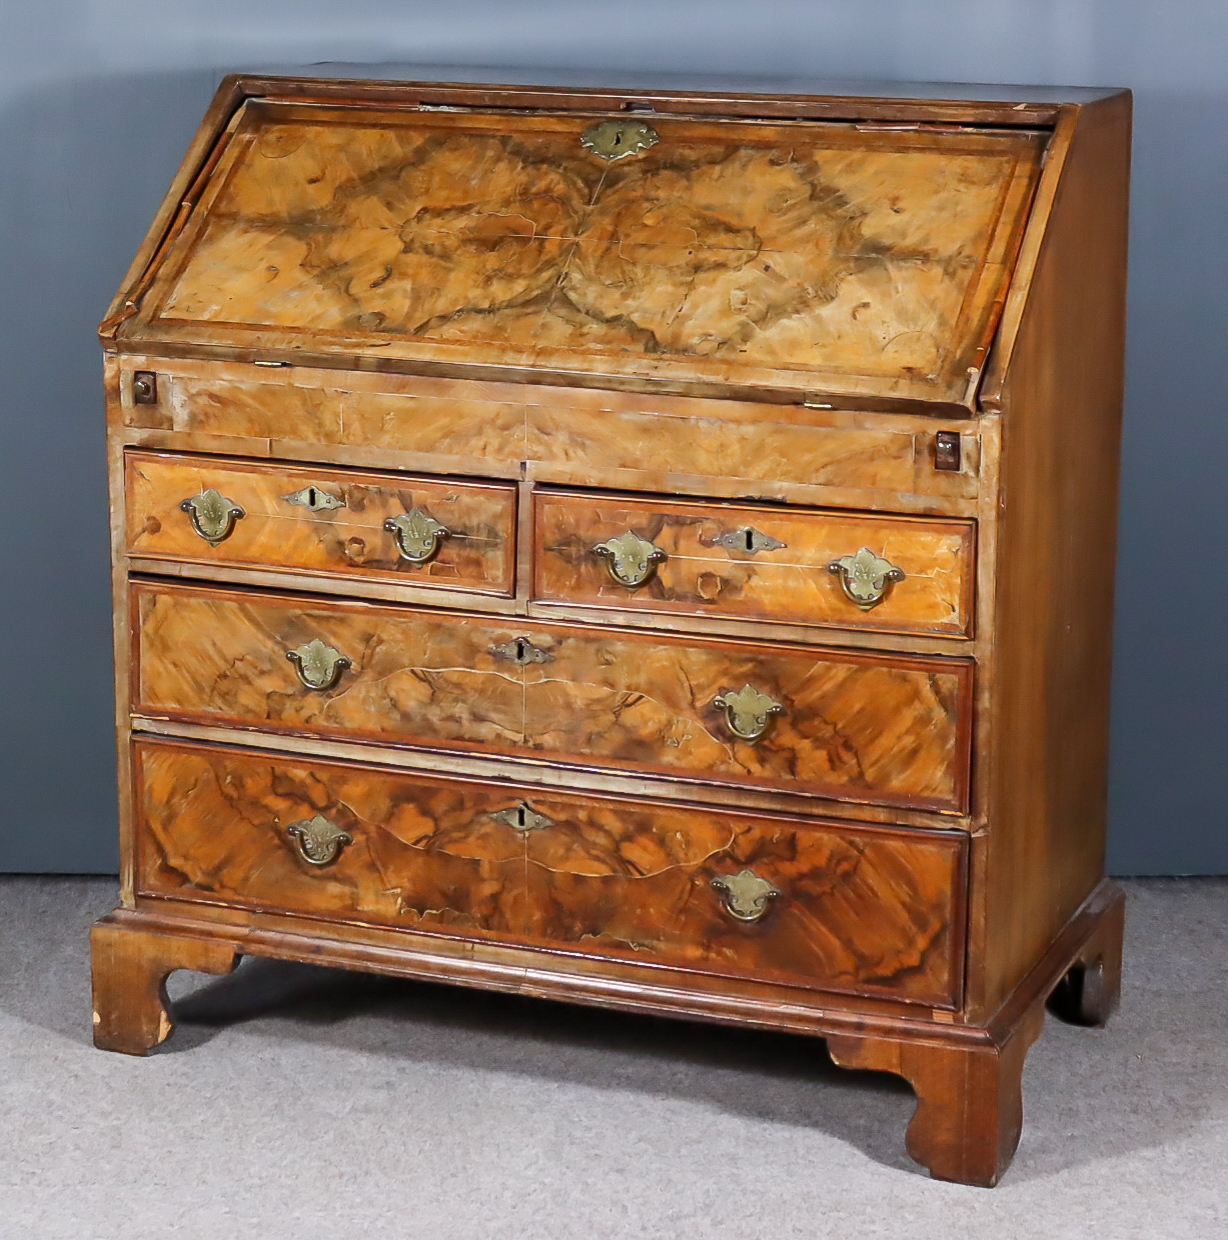 A Mid 18th Century Walnut and Oak Sided Bureau, the top and front inlaid with herringbone